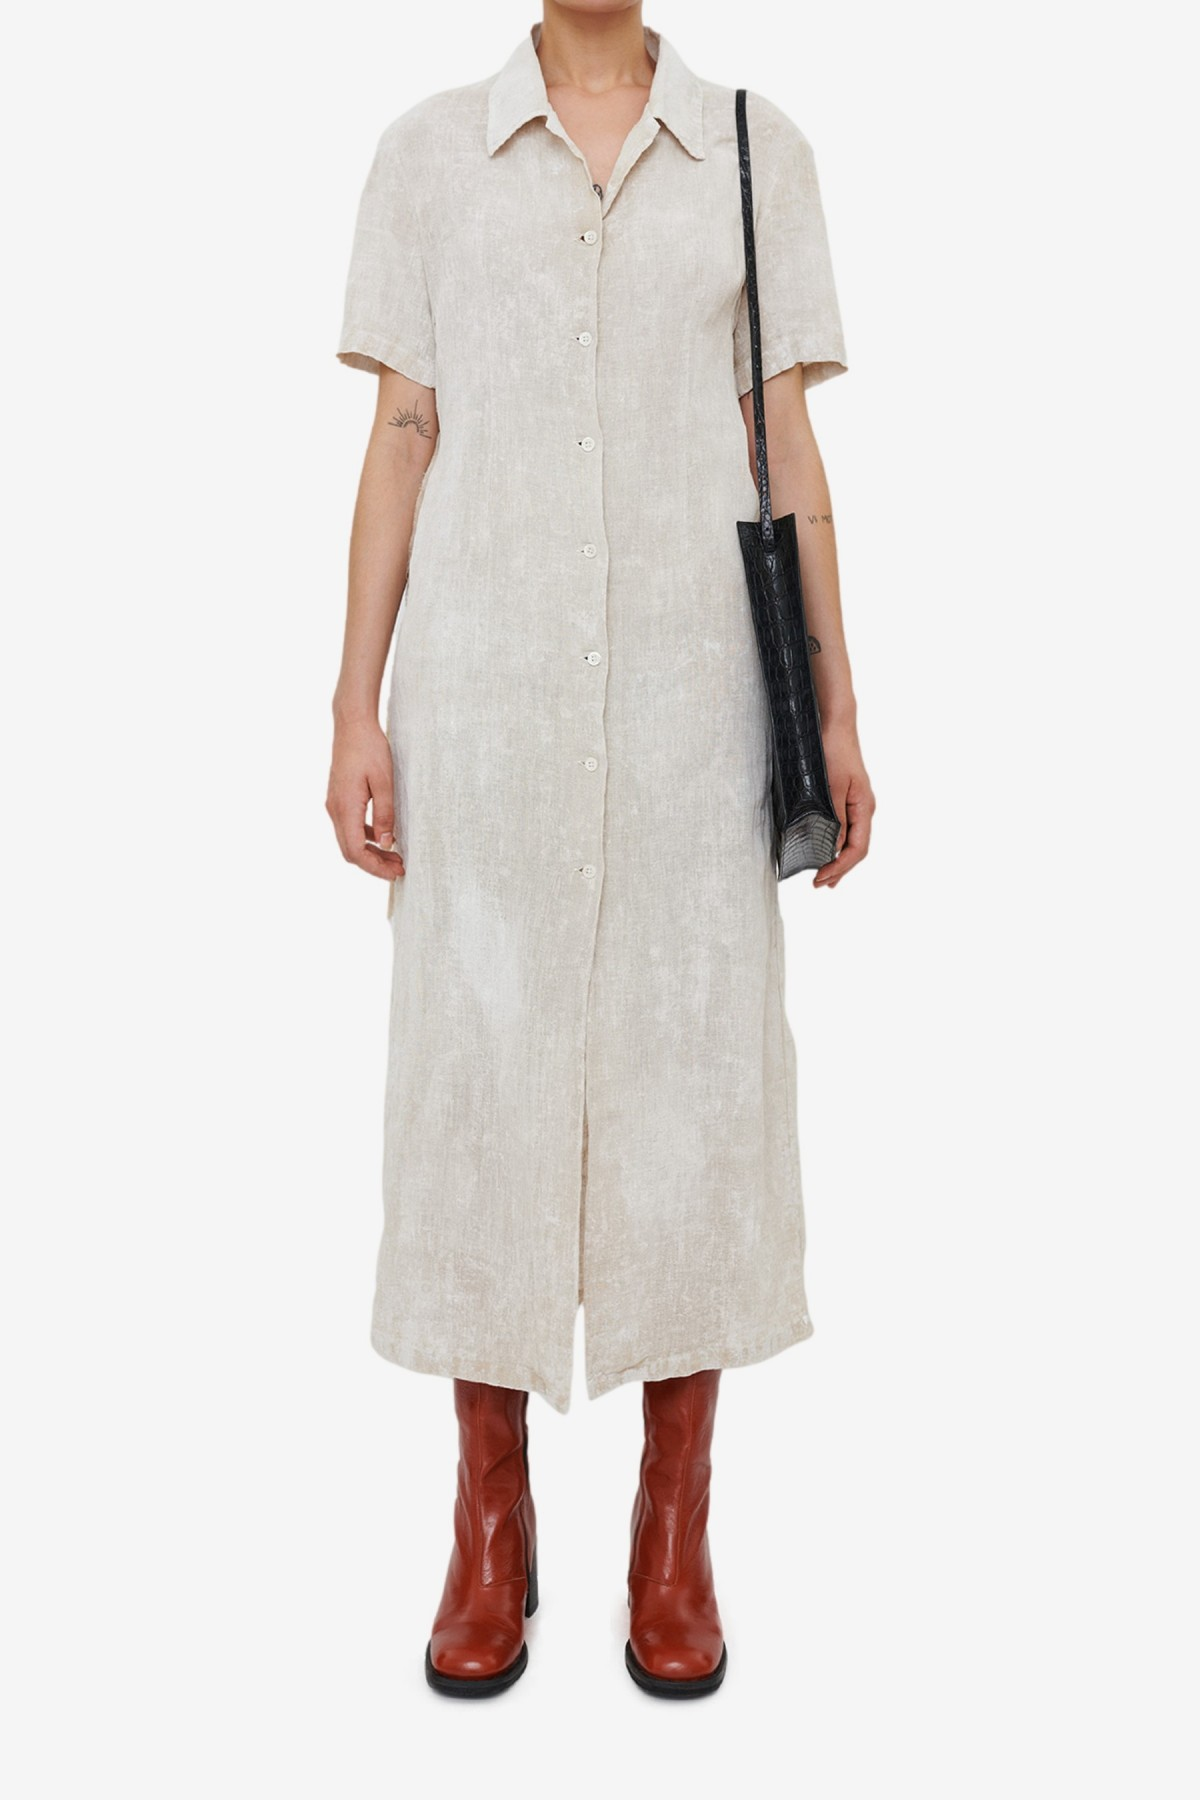 Our Legacy Narrow Shirt Dress in White Coated Cotton Linen